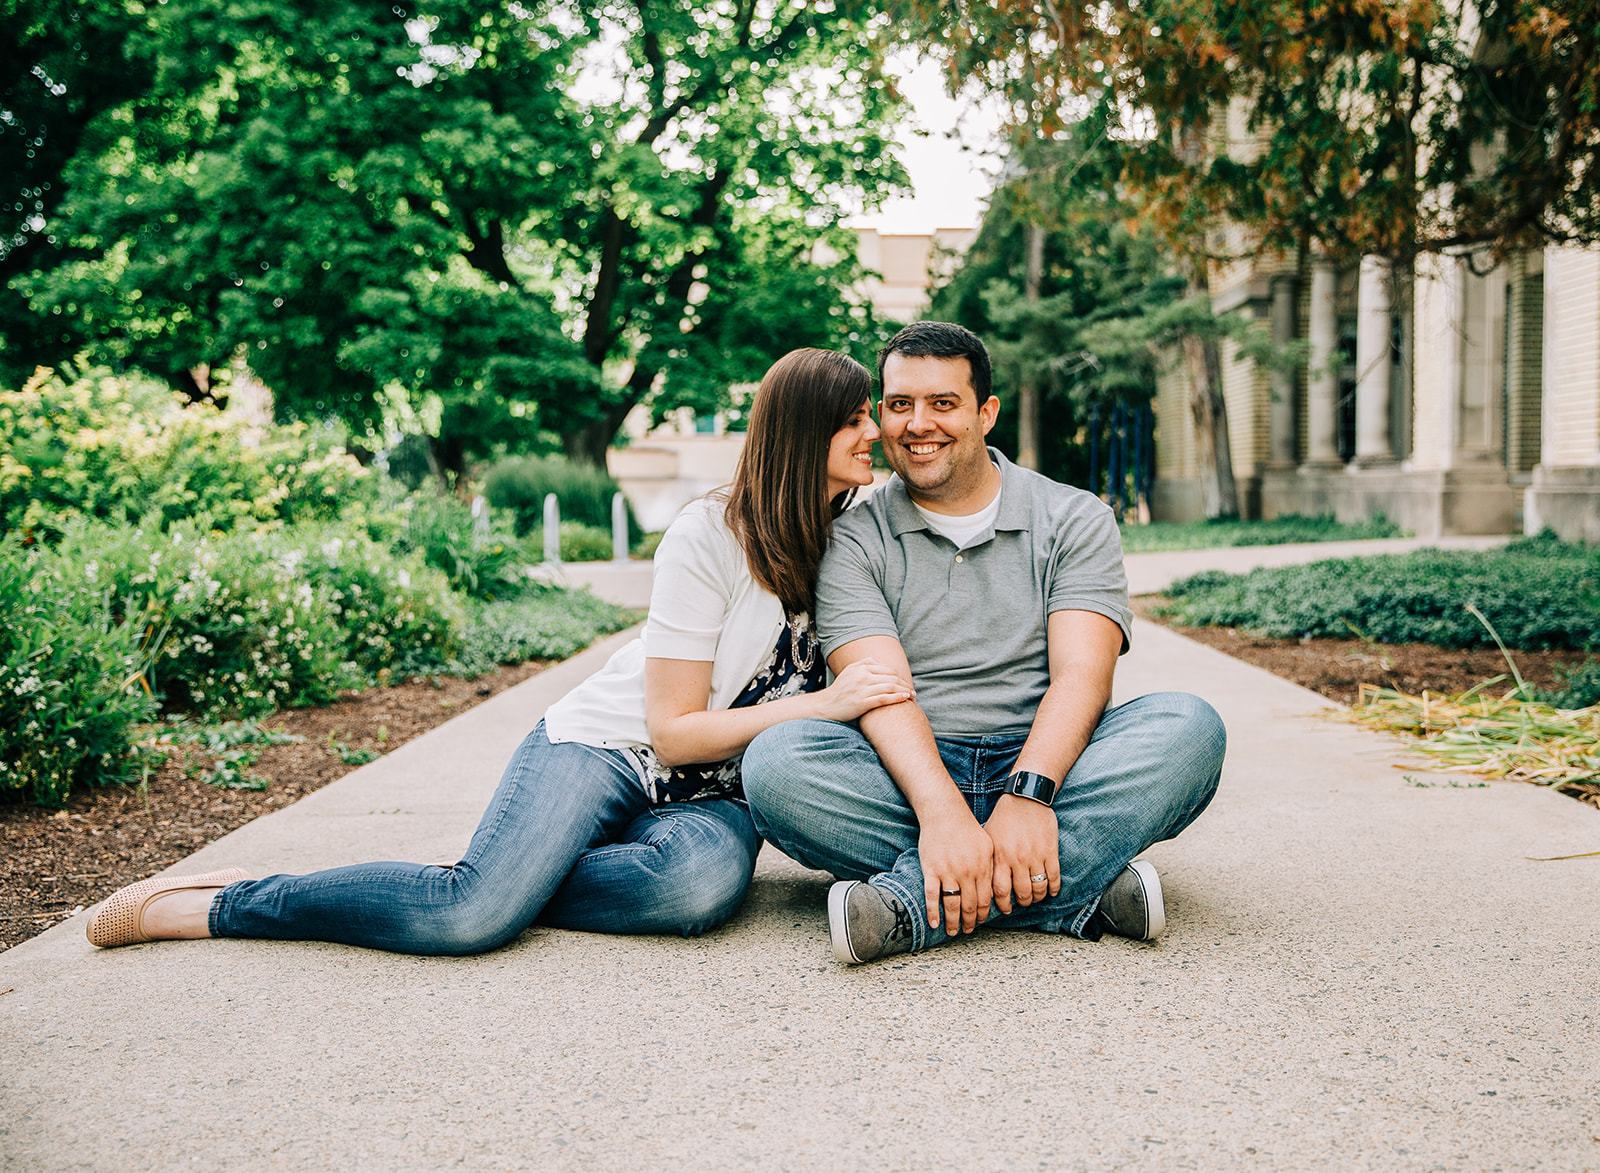 Non-cheesy engagement pictures with relaxed and natural posing by professional engagement photographer Bella Alder in Logan, Utah on the Utah State University campus. #bellaalderphoto #engagements #ldsengagements #engagementsession #engagementphotographer #ldsphotographer #loganutahphotographer